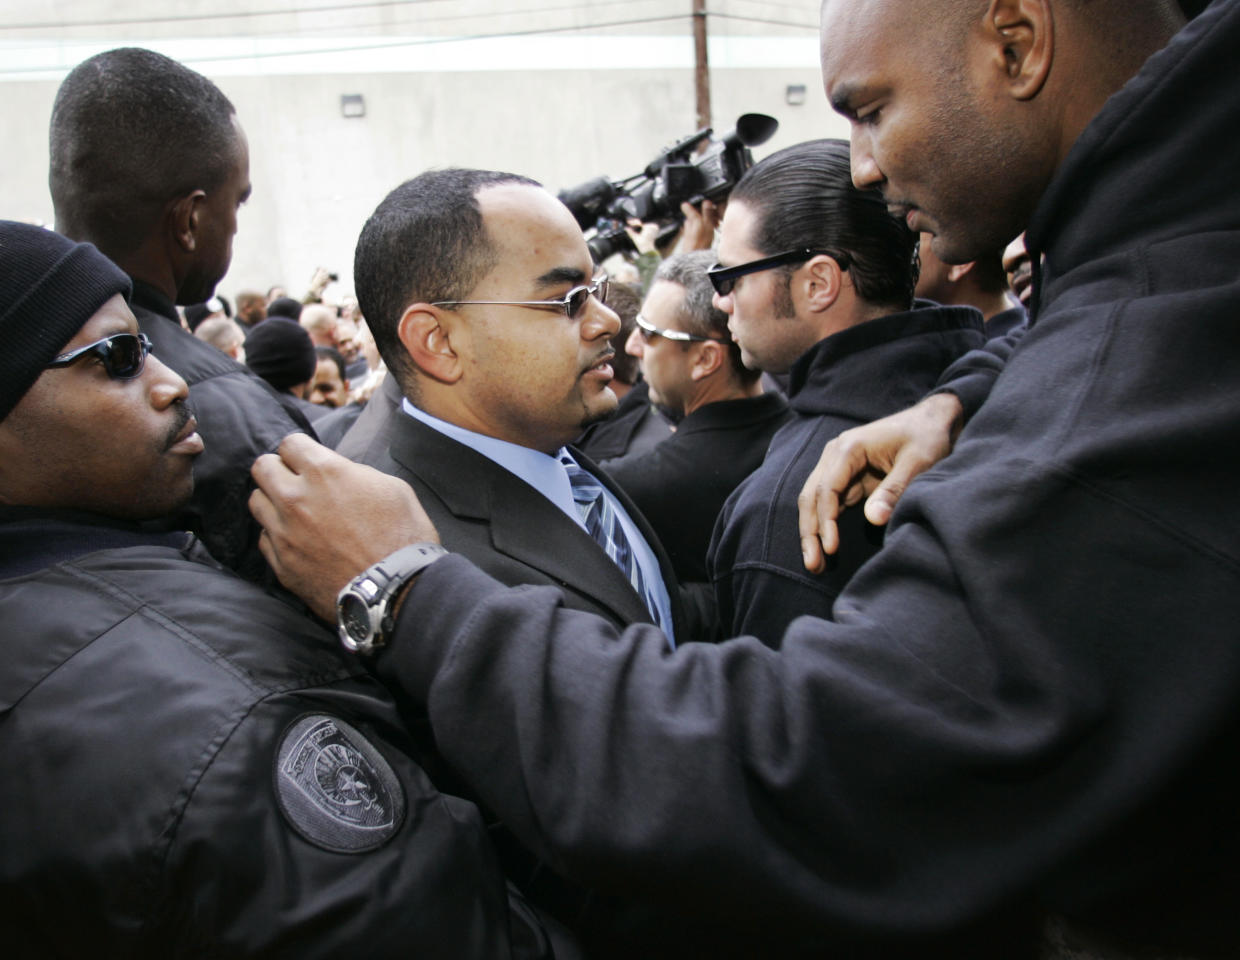 Anthony Villavaso II, third from left, hugs a fellow officer as he and six other New Orleans police officers turn themselves in at the city jail in New Orleans Tuesday, Jan. 2, 2007. Seven officers have been charged in connection with deadly shootings at the Danziger Bridge during the aftermath of Hurricane Katrina. (AP Photo/Alex Brandon)